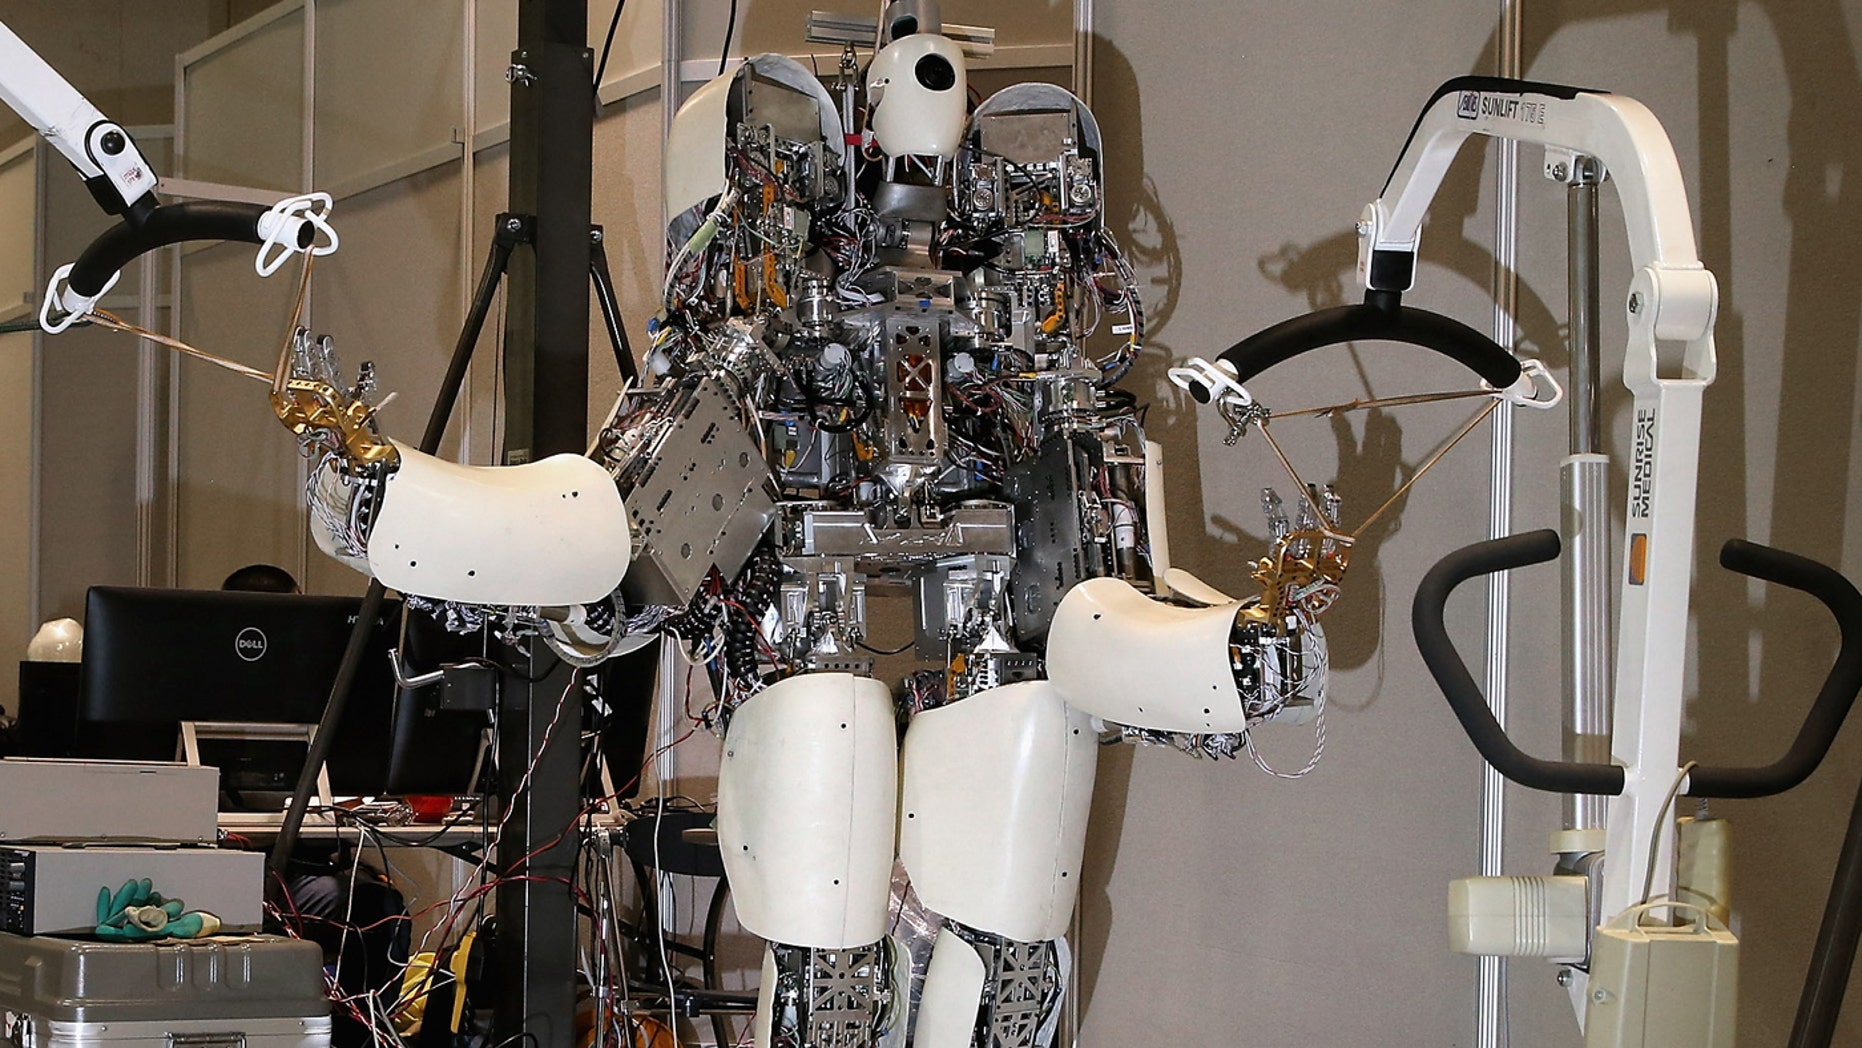 Team NEDO-Hydra's robot is held in place by racks inside the Robot Garage during the Defense Advanced Research Projects Agency (DARPA) Robotics Challenge, June 6, 2015 in Pomona, California.